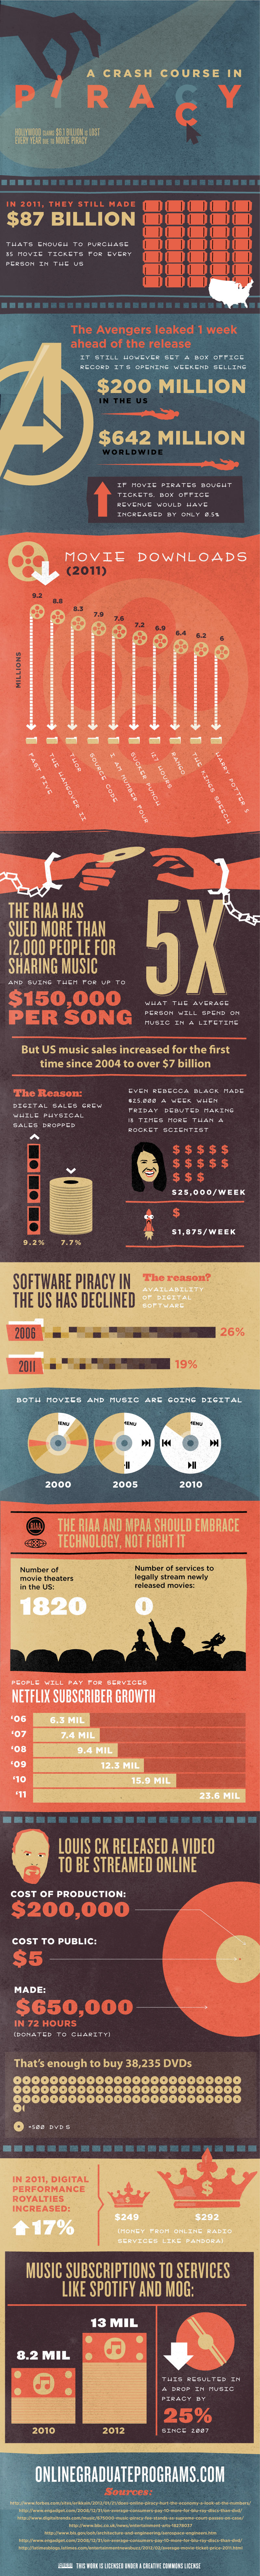 Music, Movies, Programs & Piracy